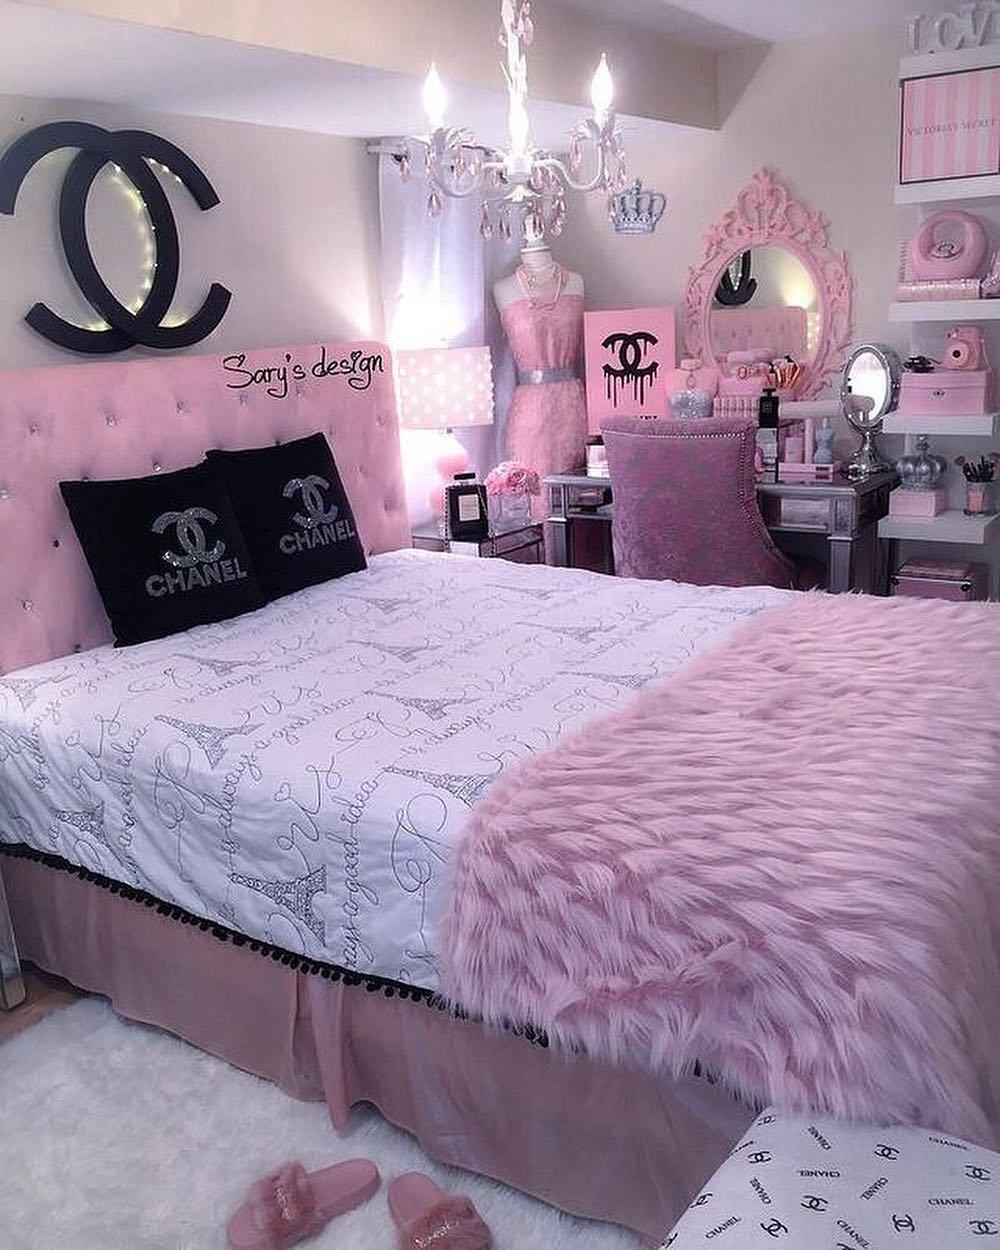 Chanel inspired bedroom (avec images)  Deco chambre coconing